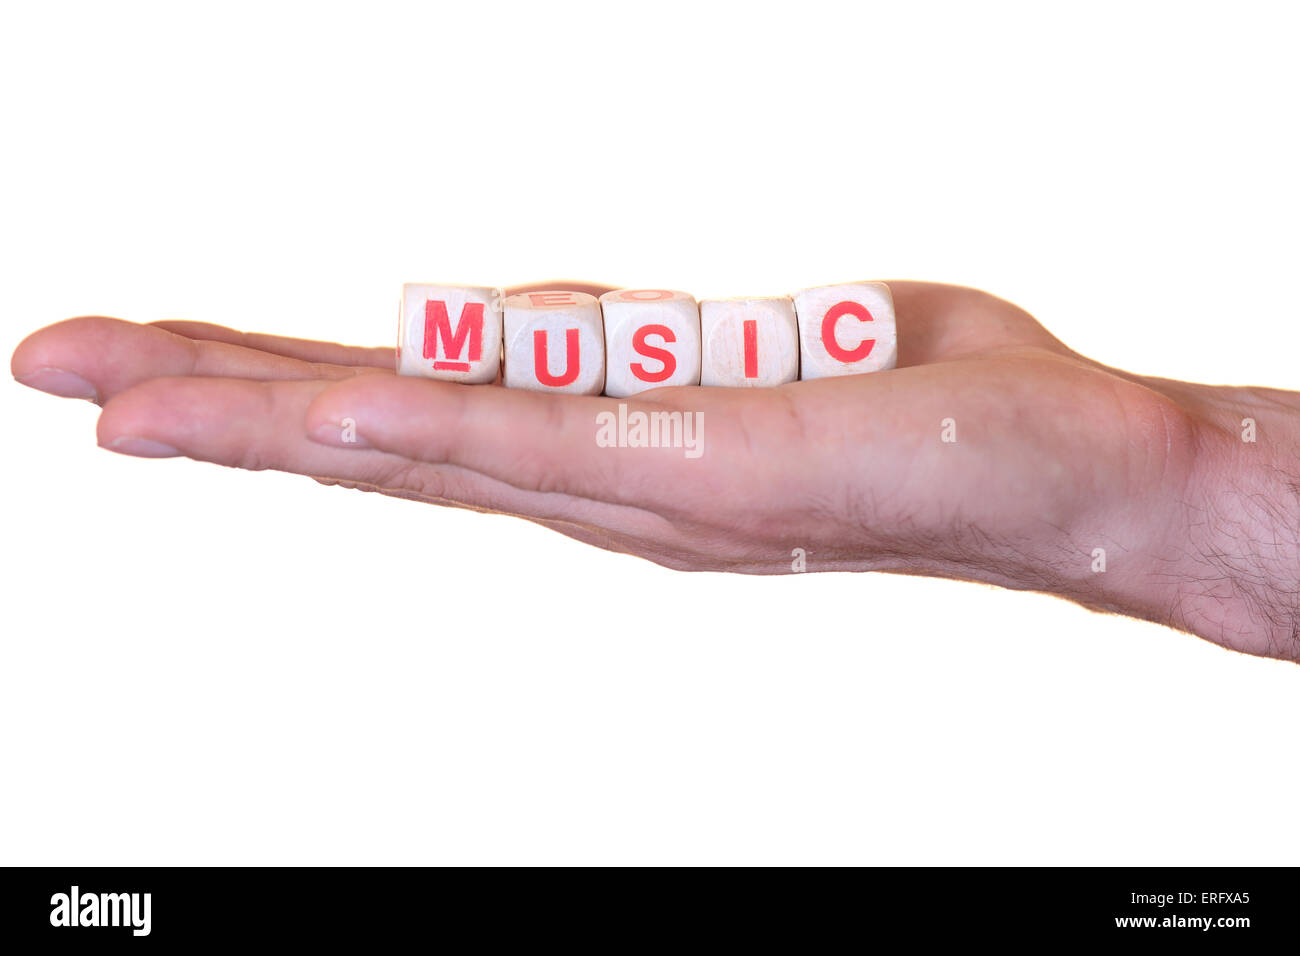 The word music written with wooden dice on the he palm of the hand. Isolated on white background - Stock Image